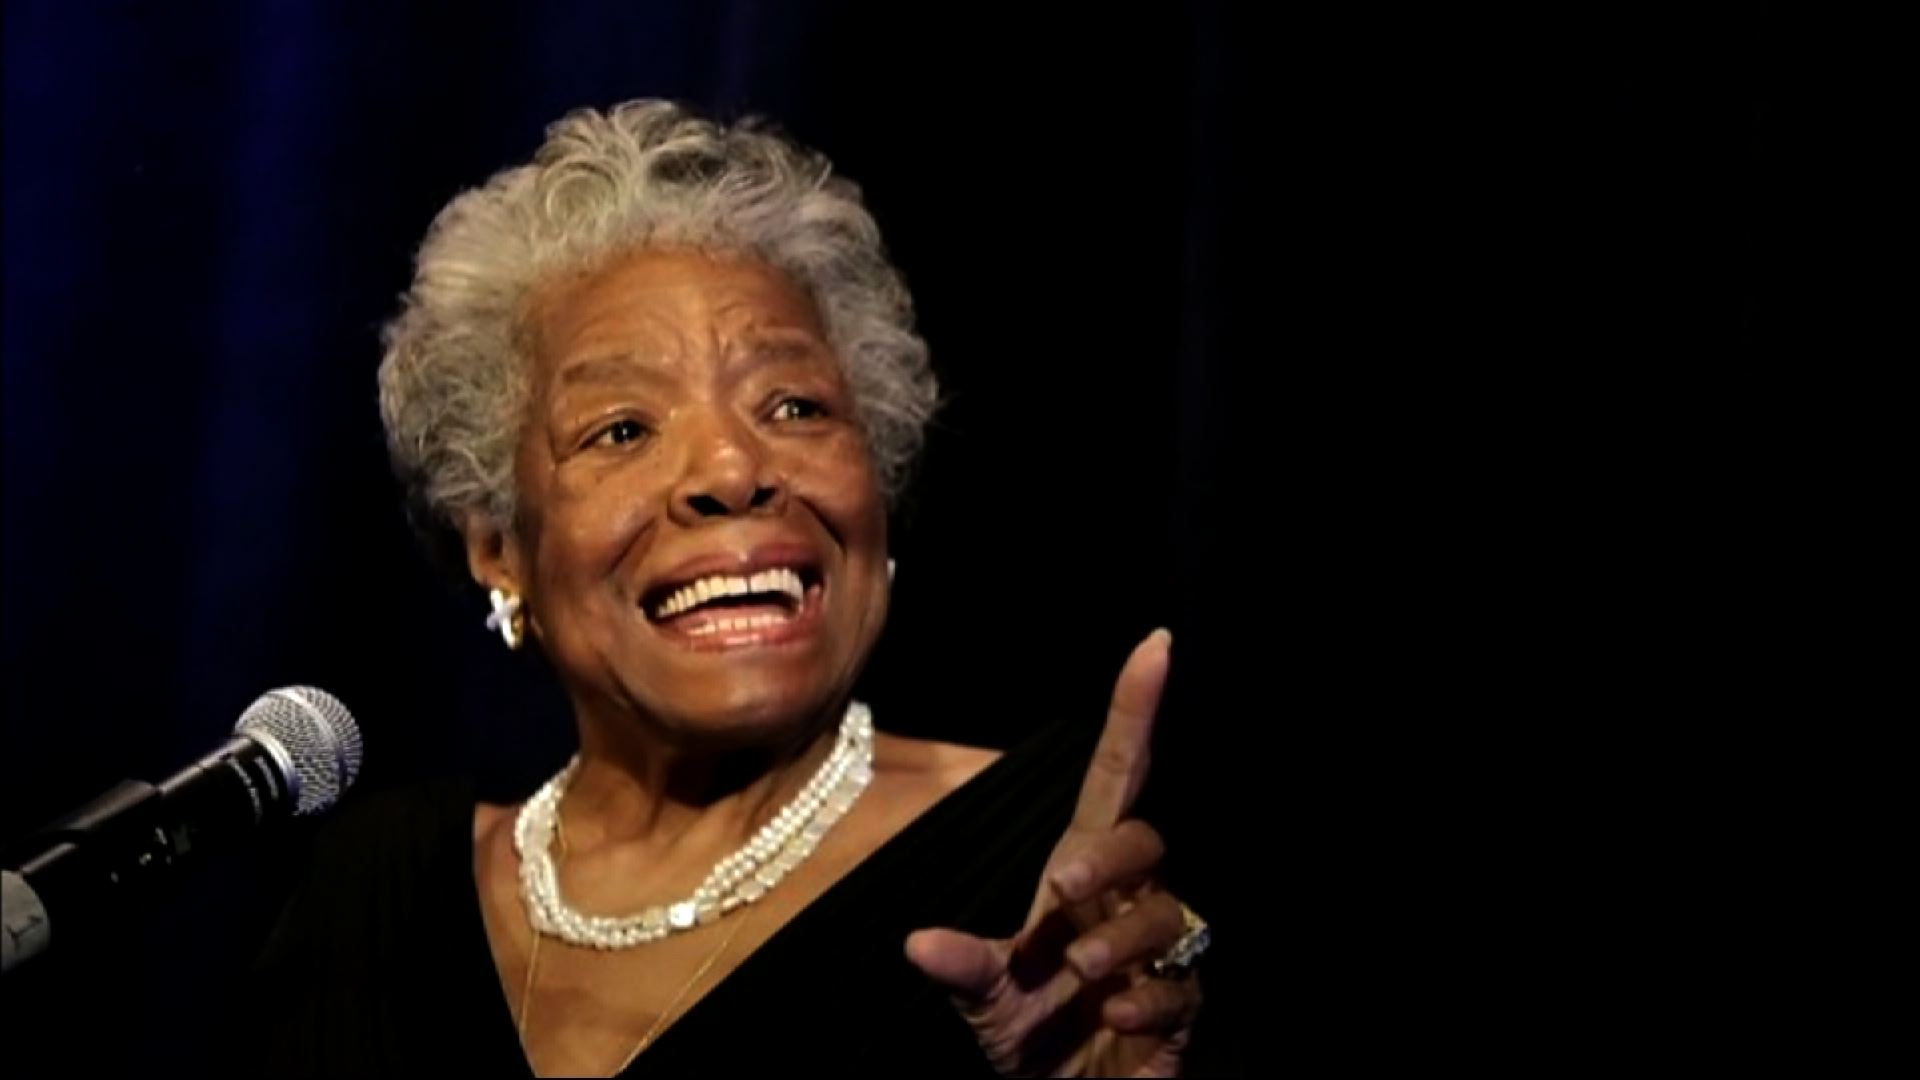 a look at maya angelou an american writer as a woman of hope Download audiobooks narrated by maya angelou to the heart of a woman sings with maya angelou's eloquent even the stars look lonesome is maya angelou talking.